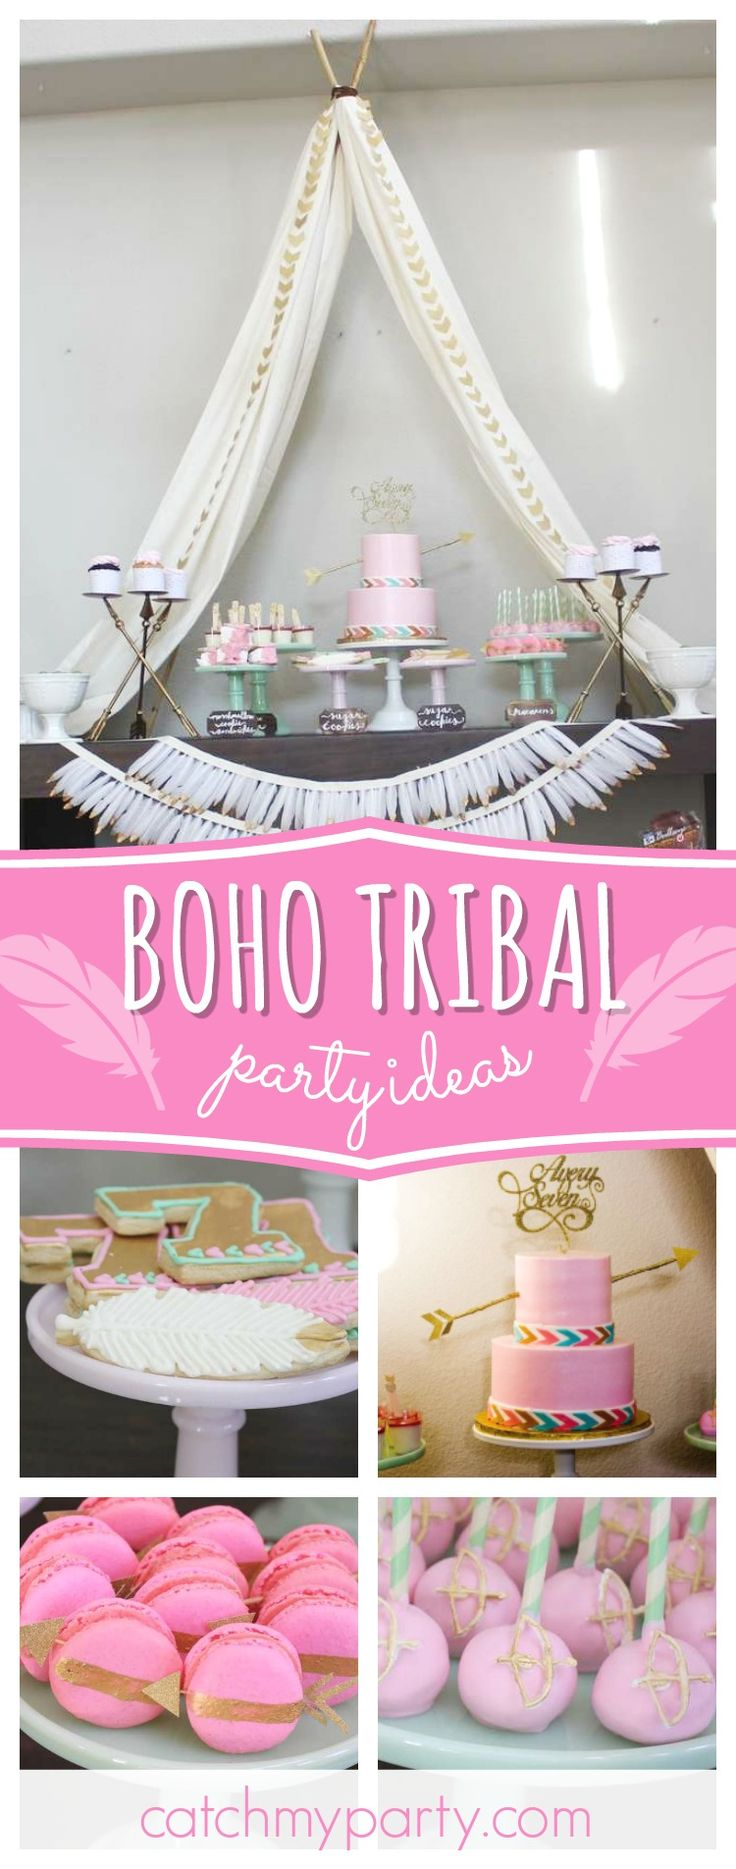 Take a look at this gorgeous boho tribal birthday party! The birthday cake is so pretty!! See more party ideas and share yours at CatchMyParty.com #partyideas #bohemian #tribal #girlbirthday #boho